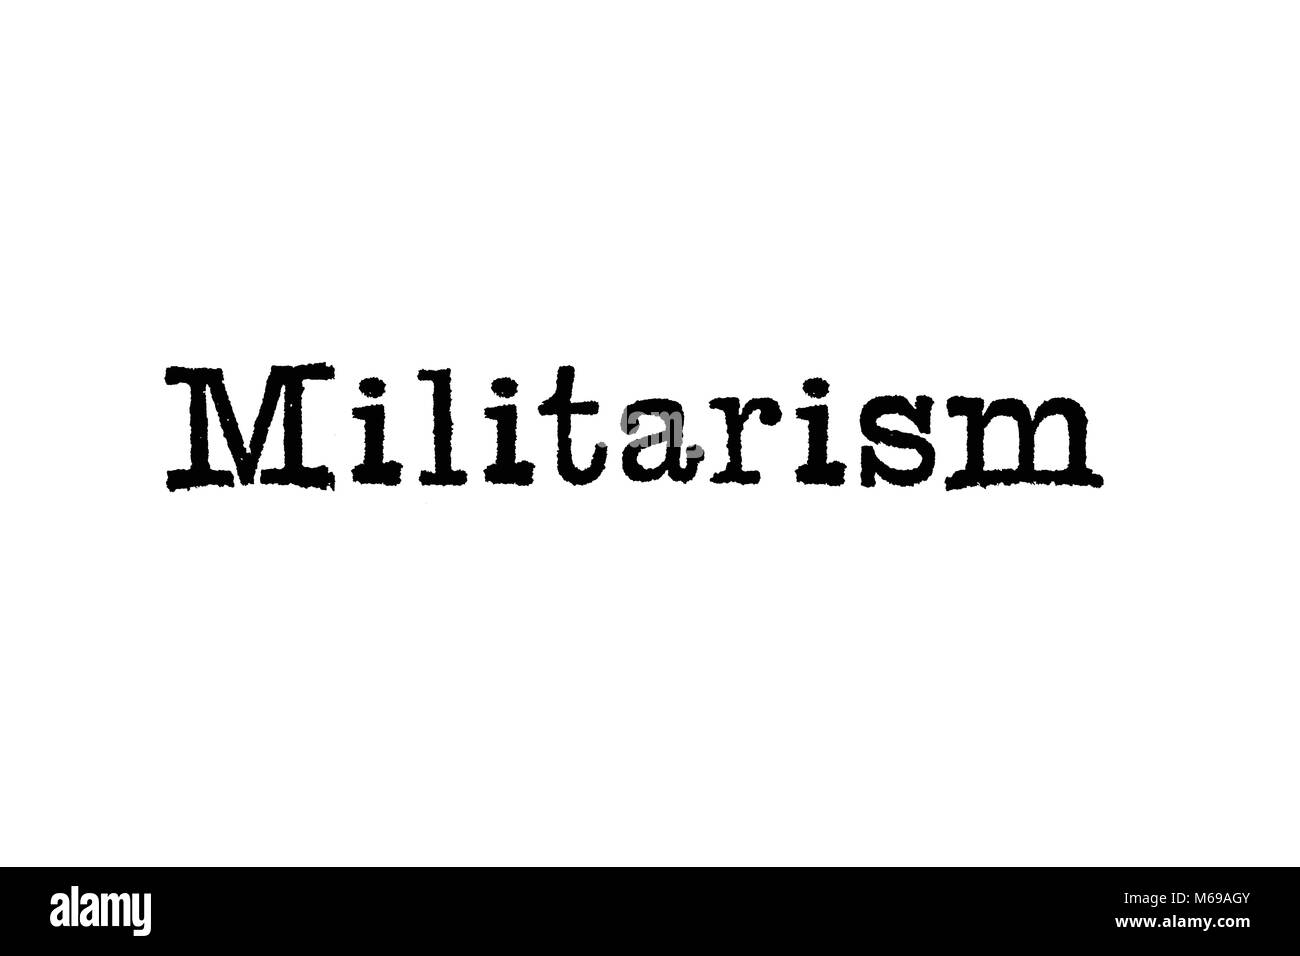 The word Militarism from a typewriter on a white background - Stock Image